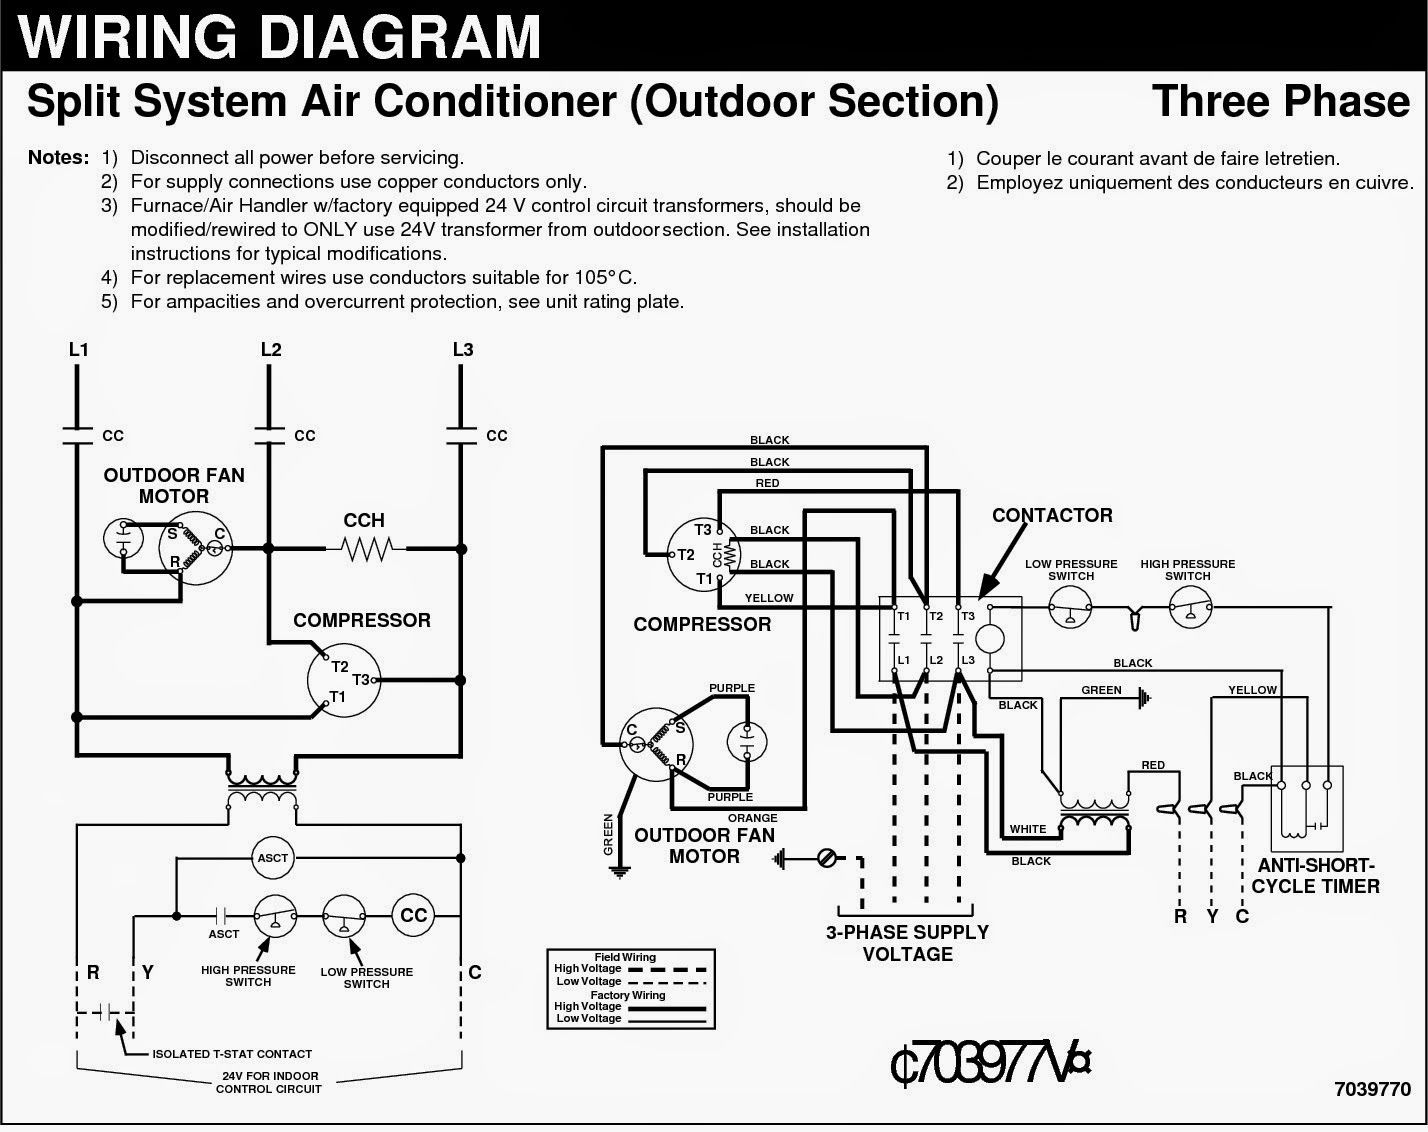 [FPWZ_2684]  Inverter Split Ac Wiring Diagram E30 Touring Wiring Diagram -  waru.1995.the-rocks.it | Wiring Diagram For A C |  | Bege Wiring Diagram Source Full Edition